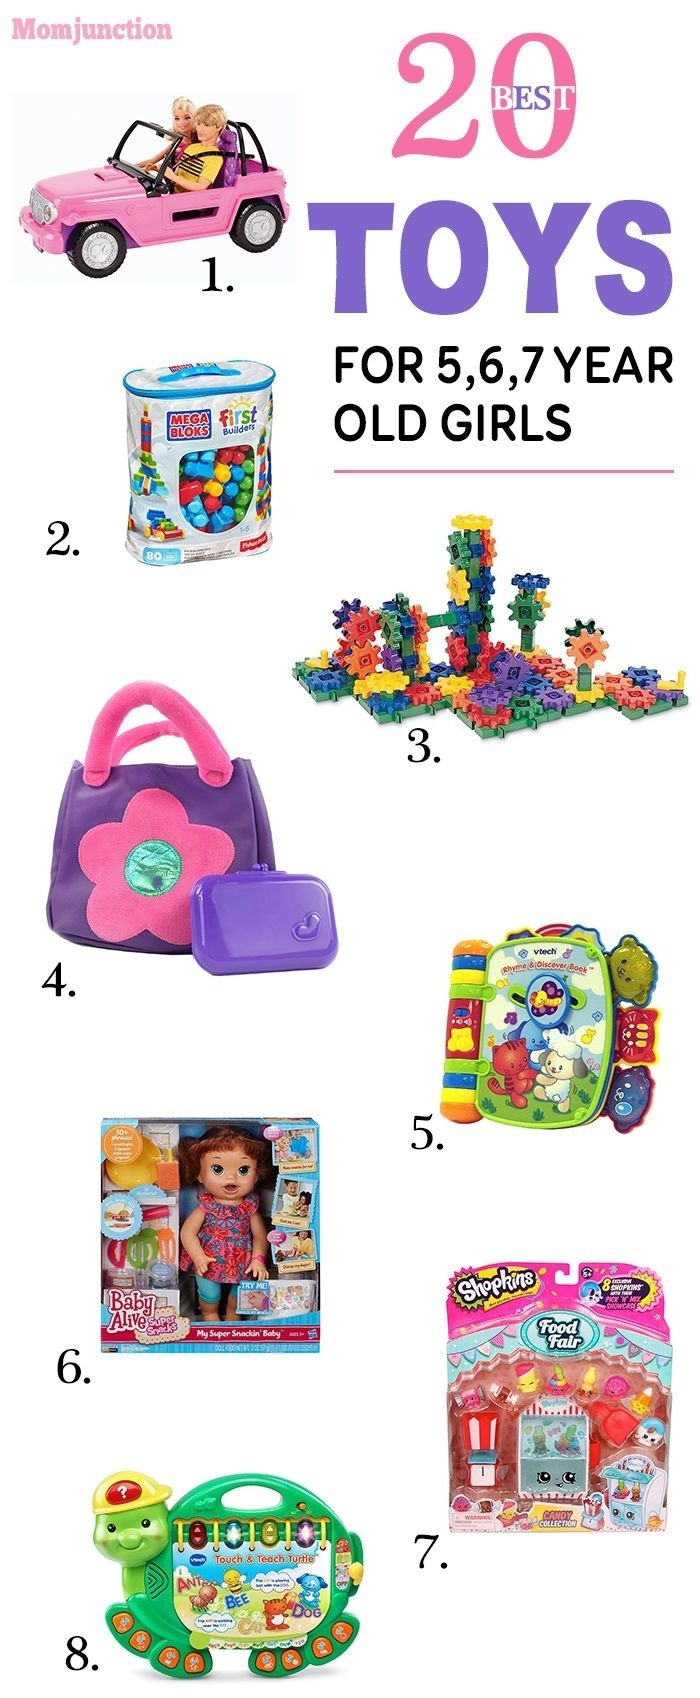 10 Pretty 7 Year Old Girl Gift Ideas 15 best toys for 56 and 7 year old girls toy girls and christmas 11 2021